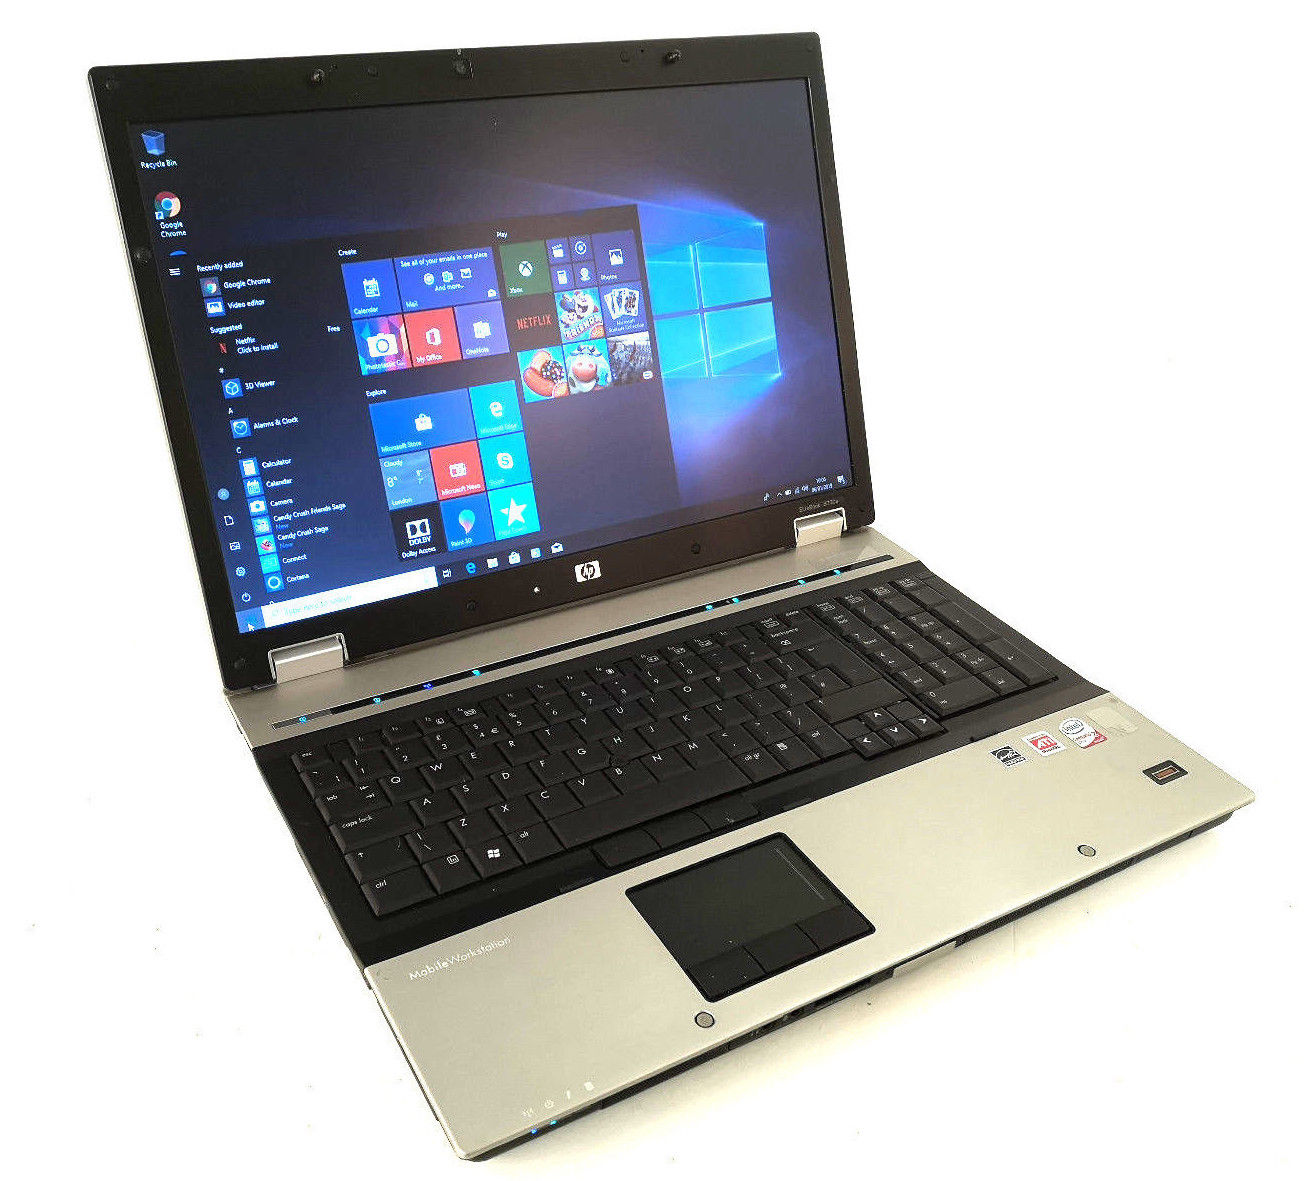 HP-Elitebook-8730w